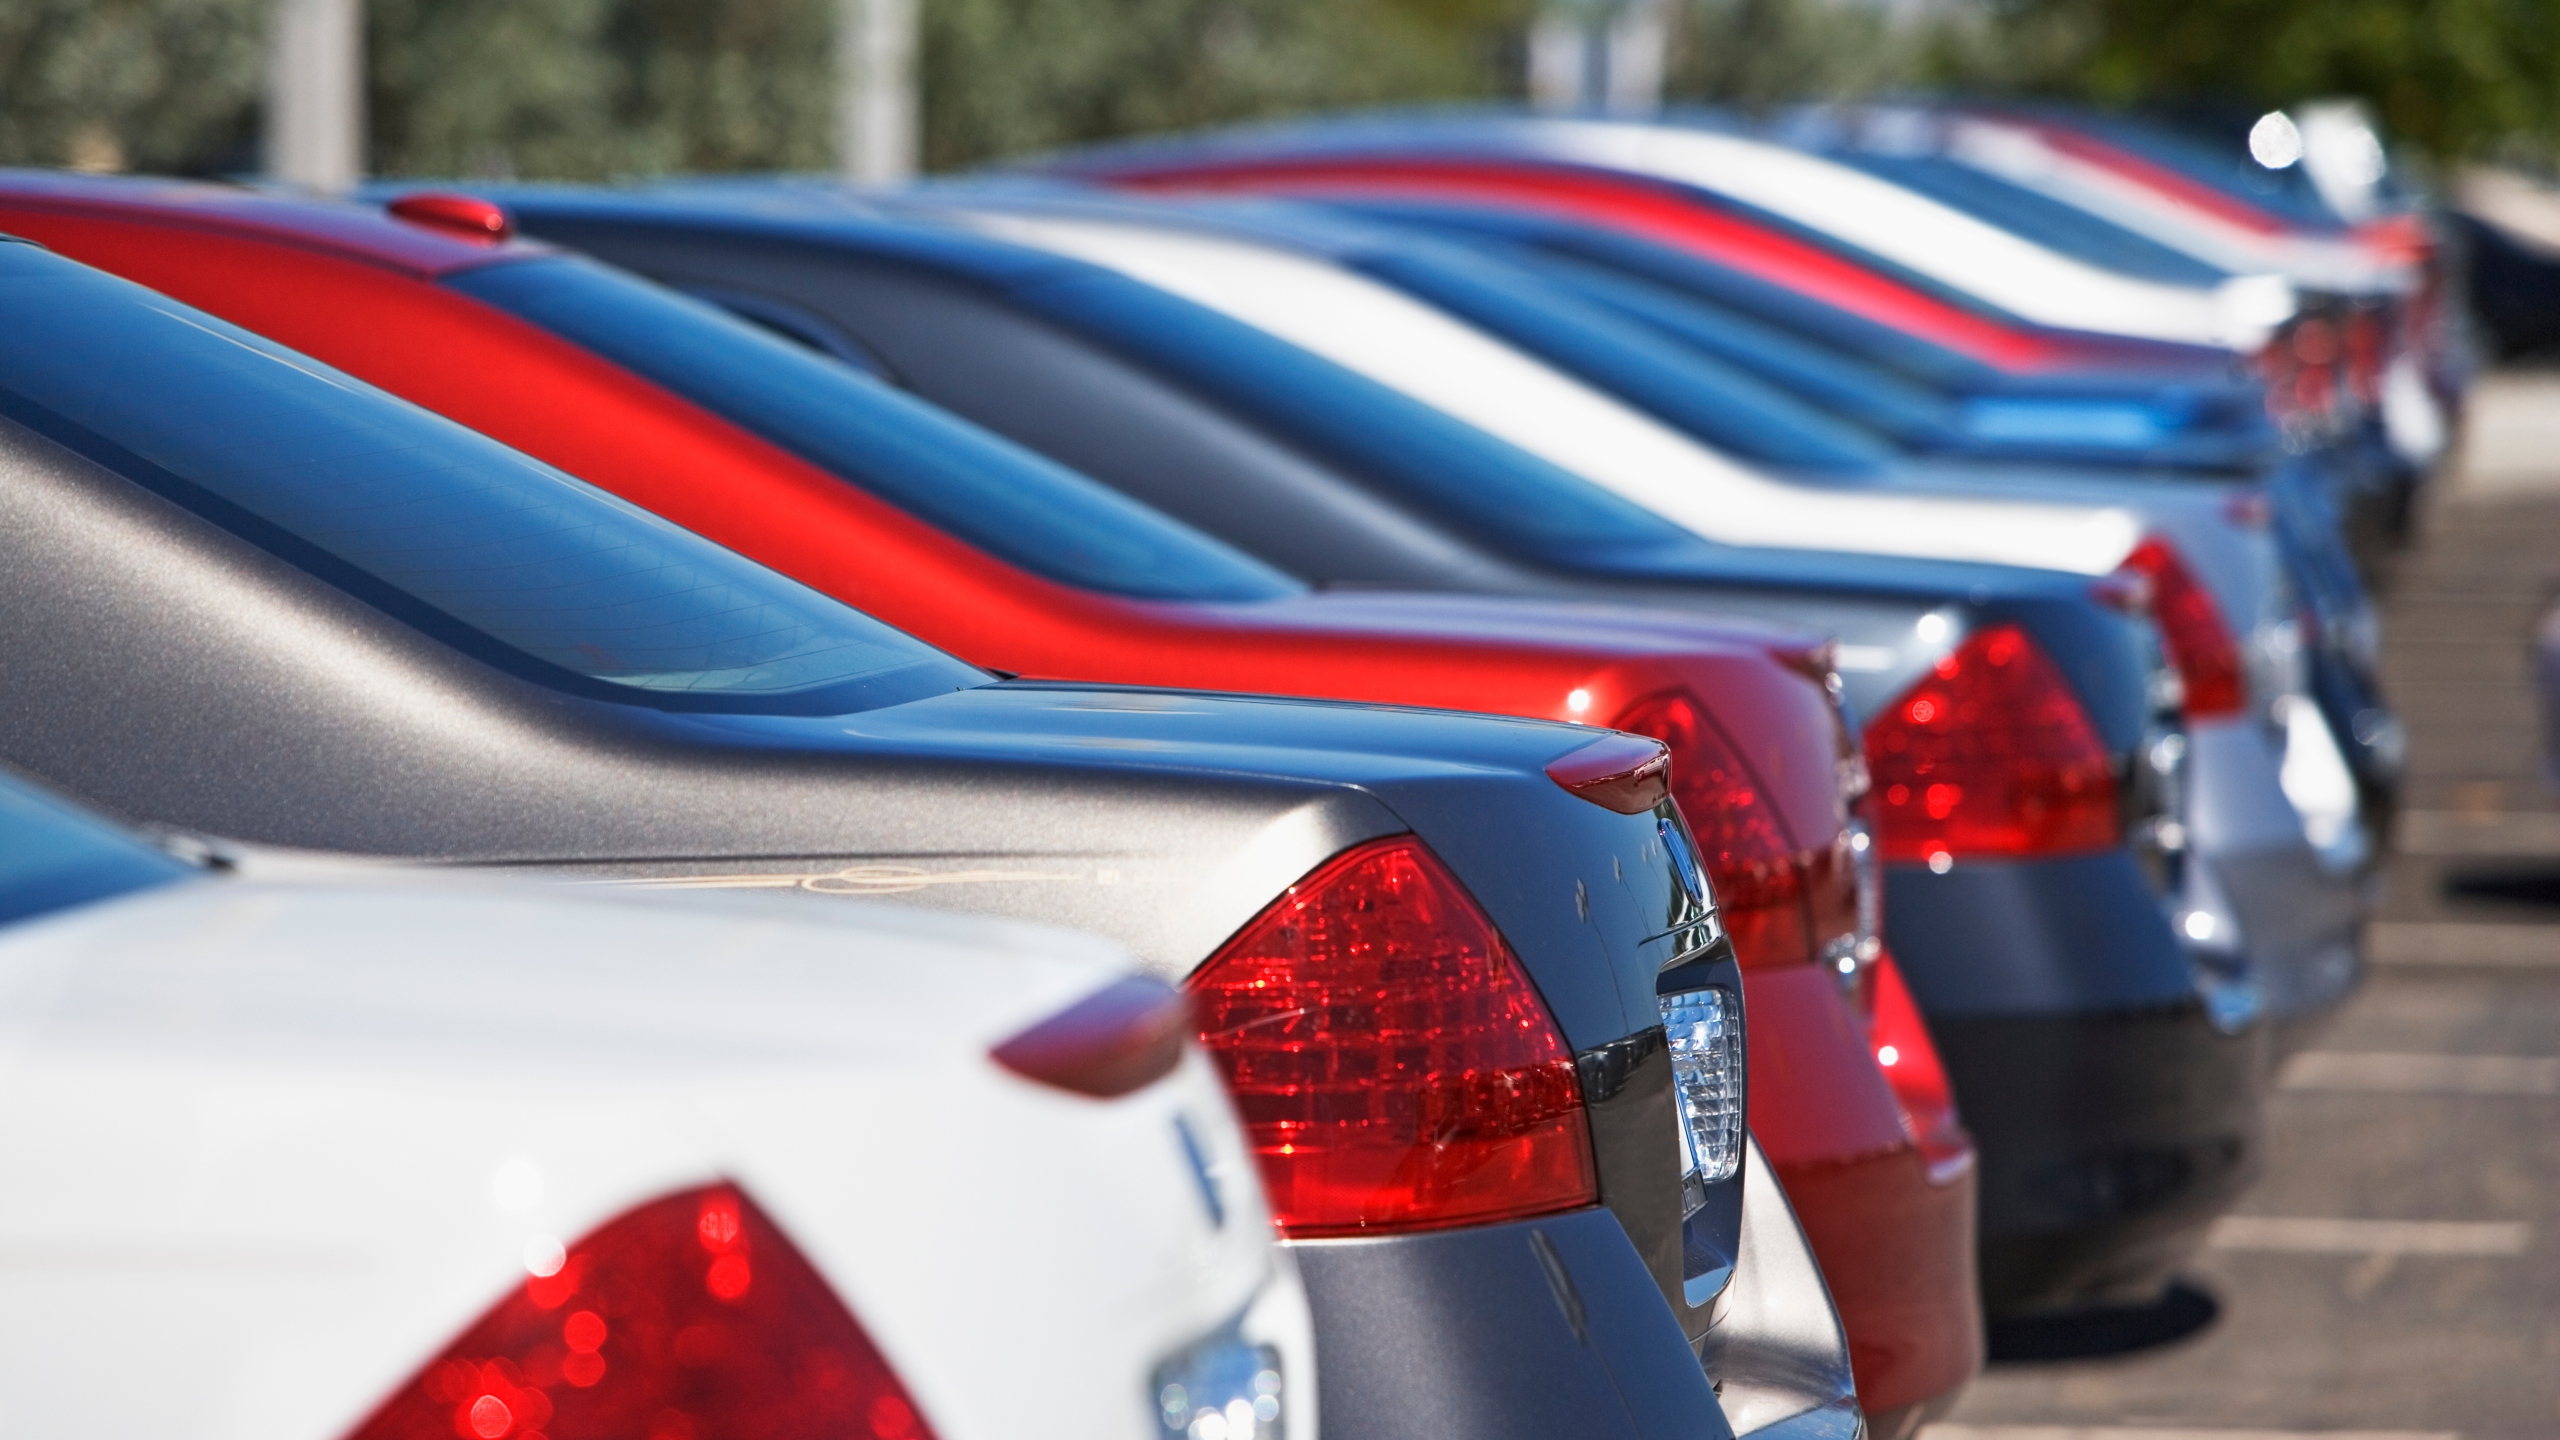 A file photo shows cars in a row. (Getty Images)